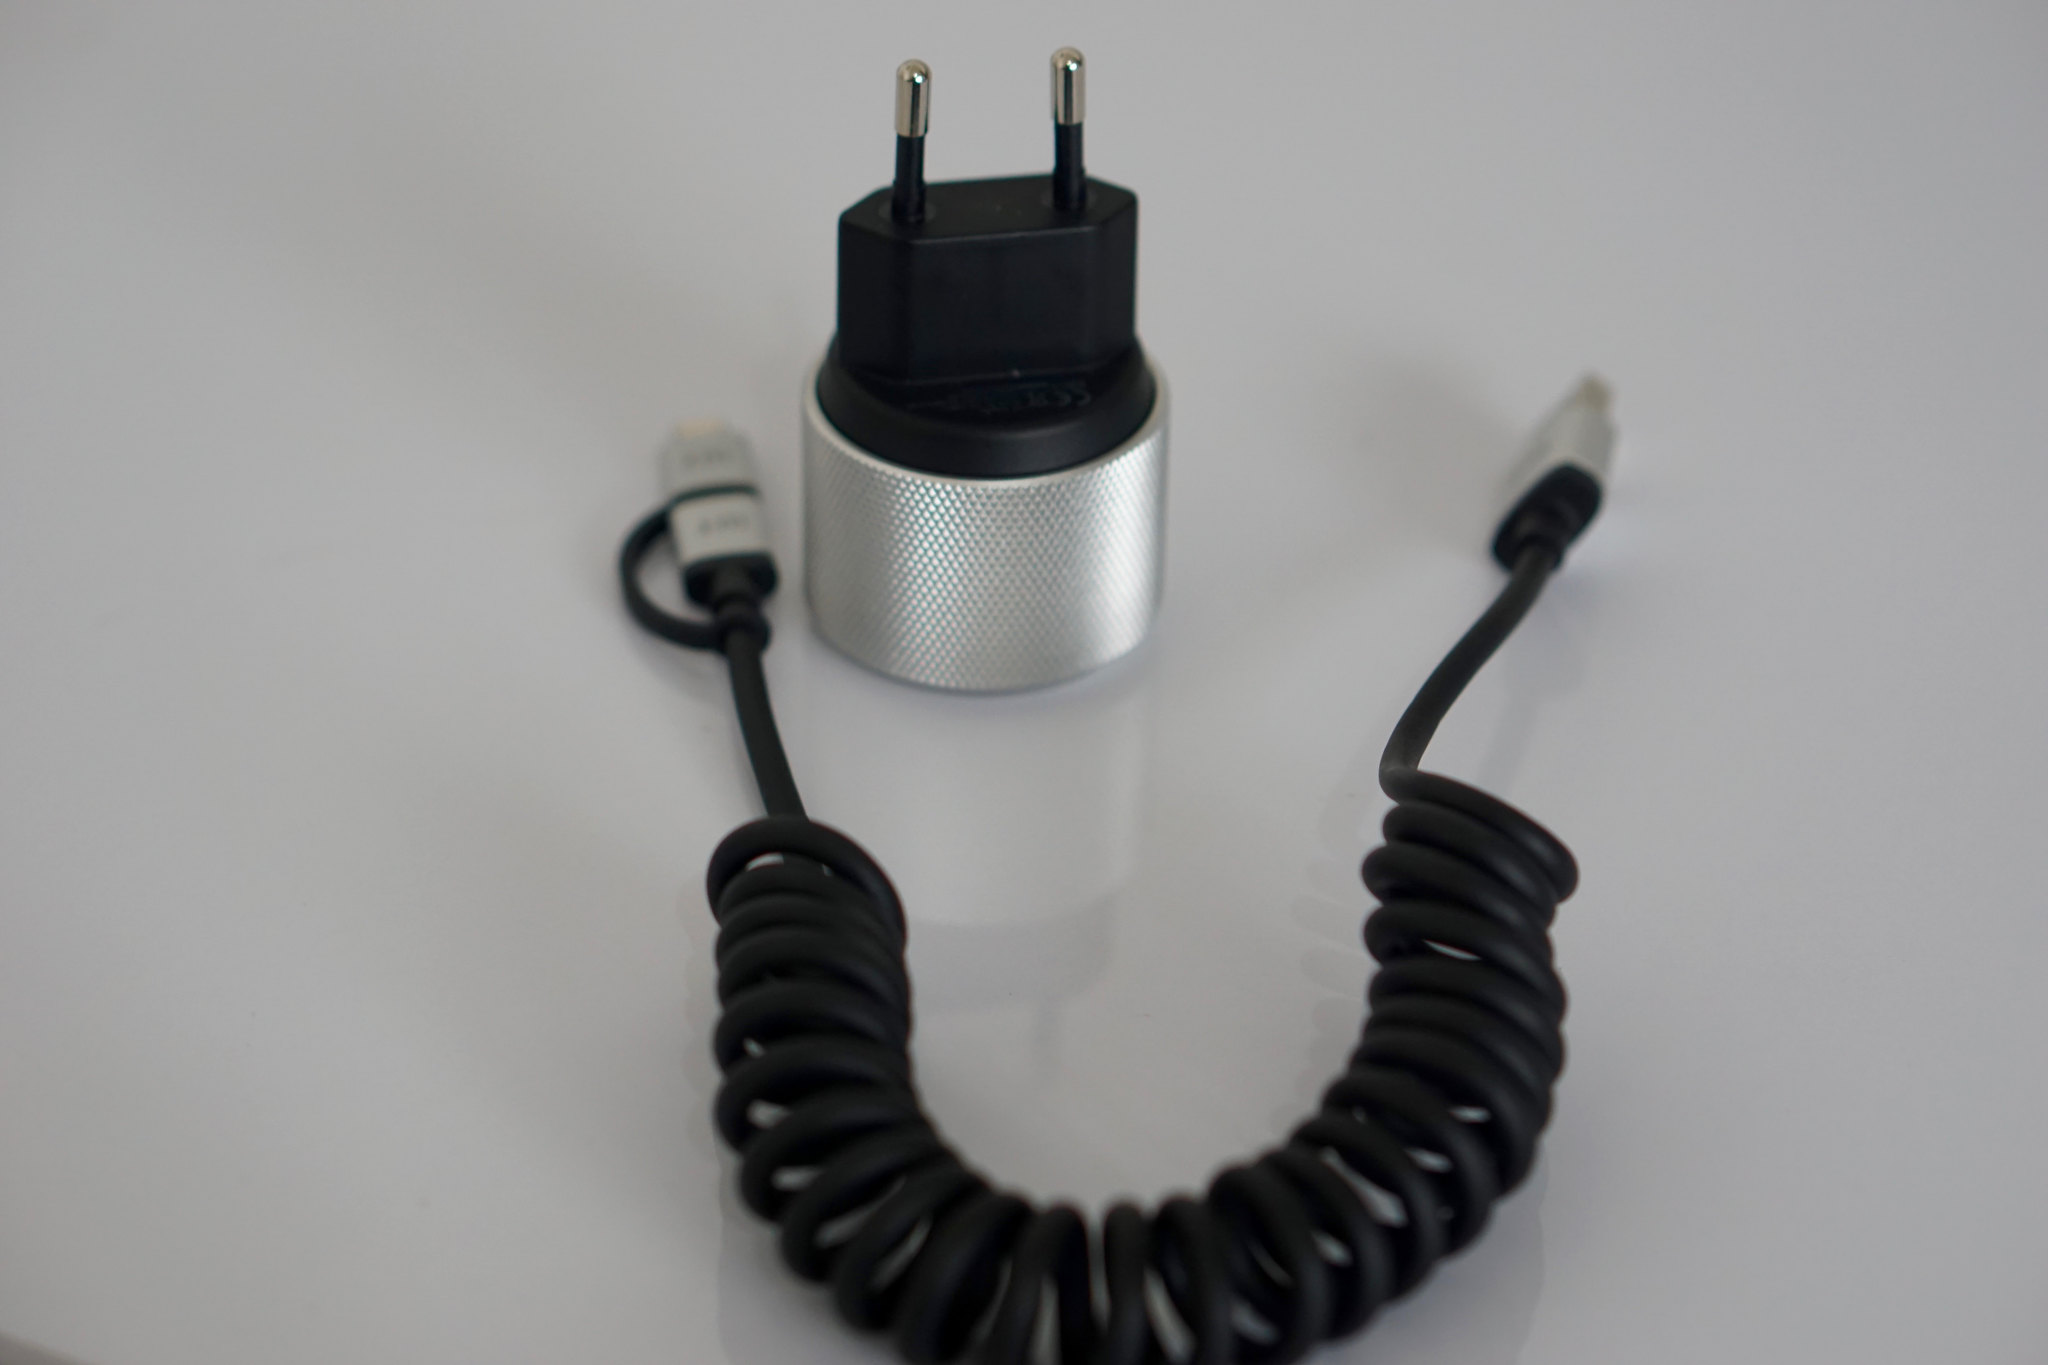 Test du chargeur USB AluPlug de Just Mobile